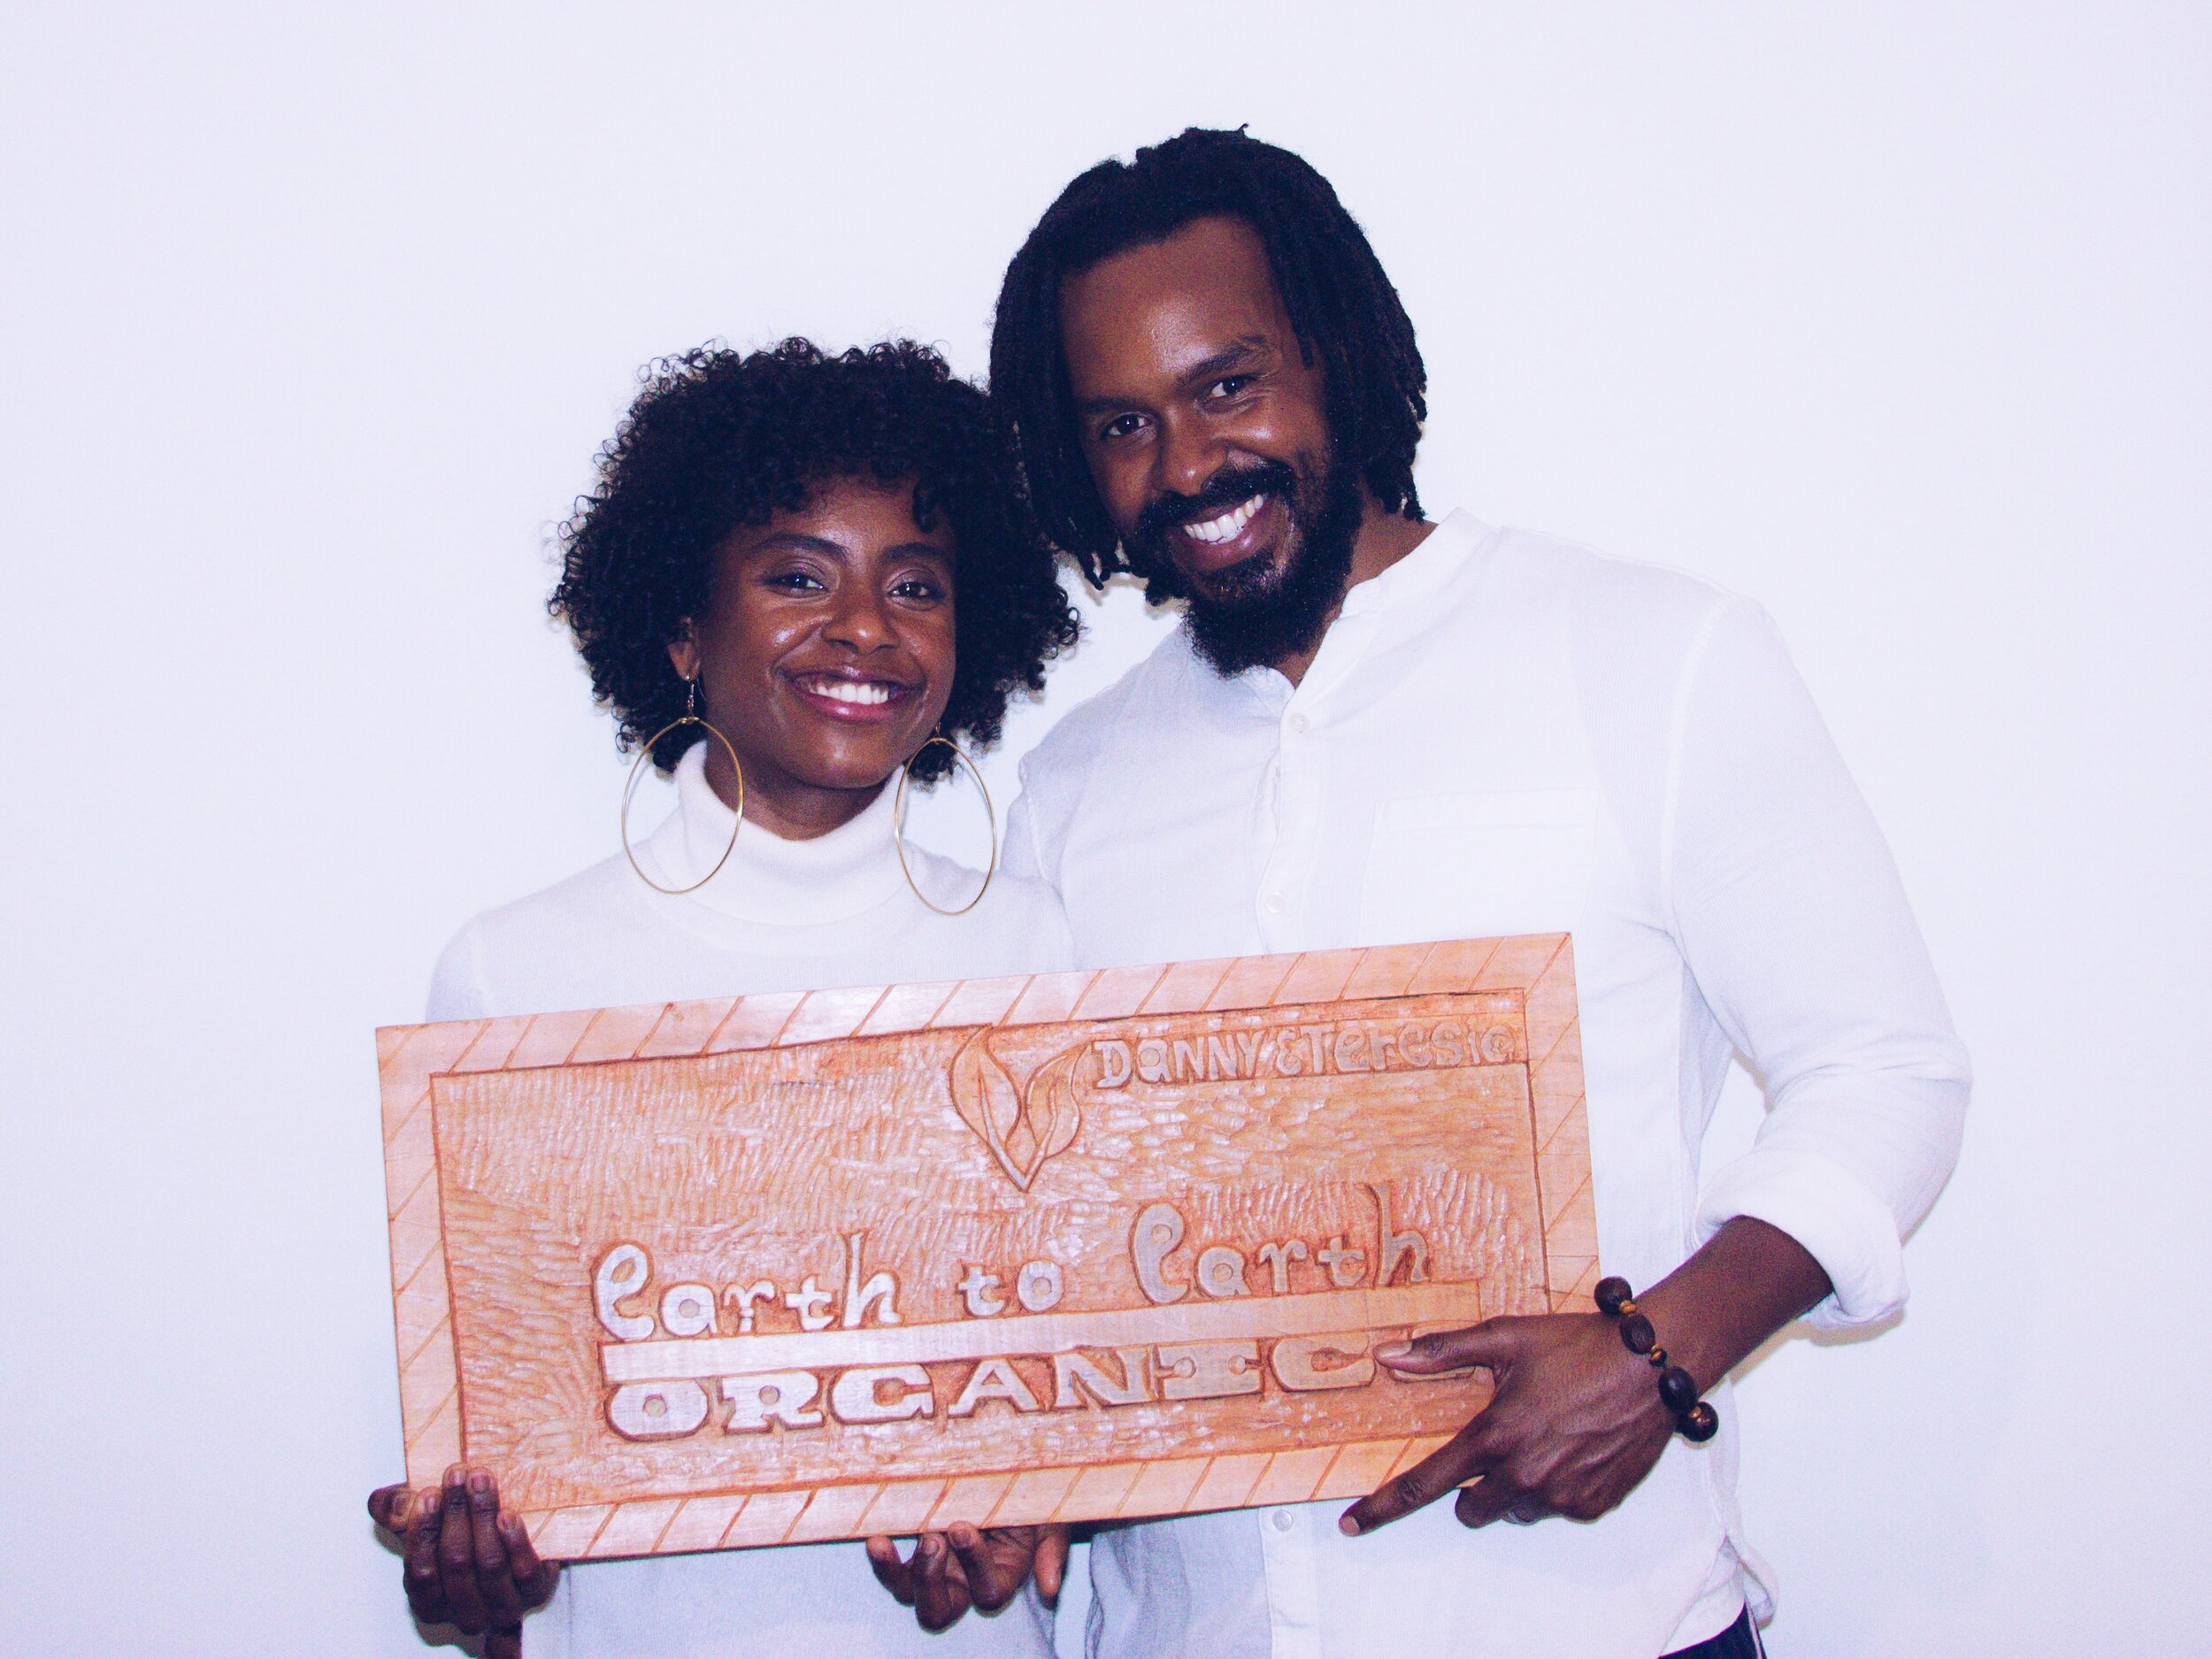 Us with plaque.JPG